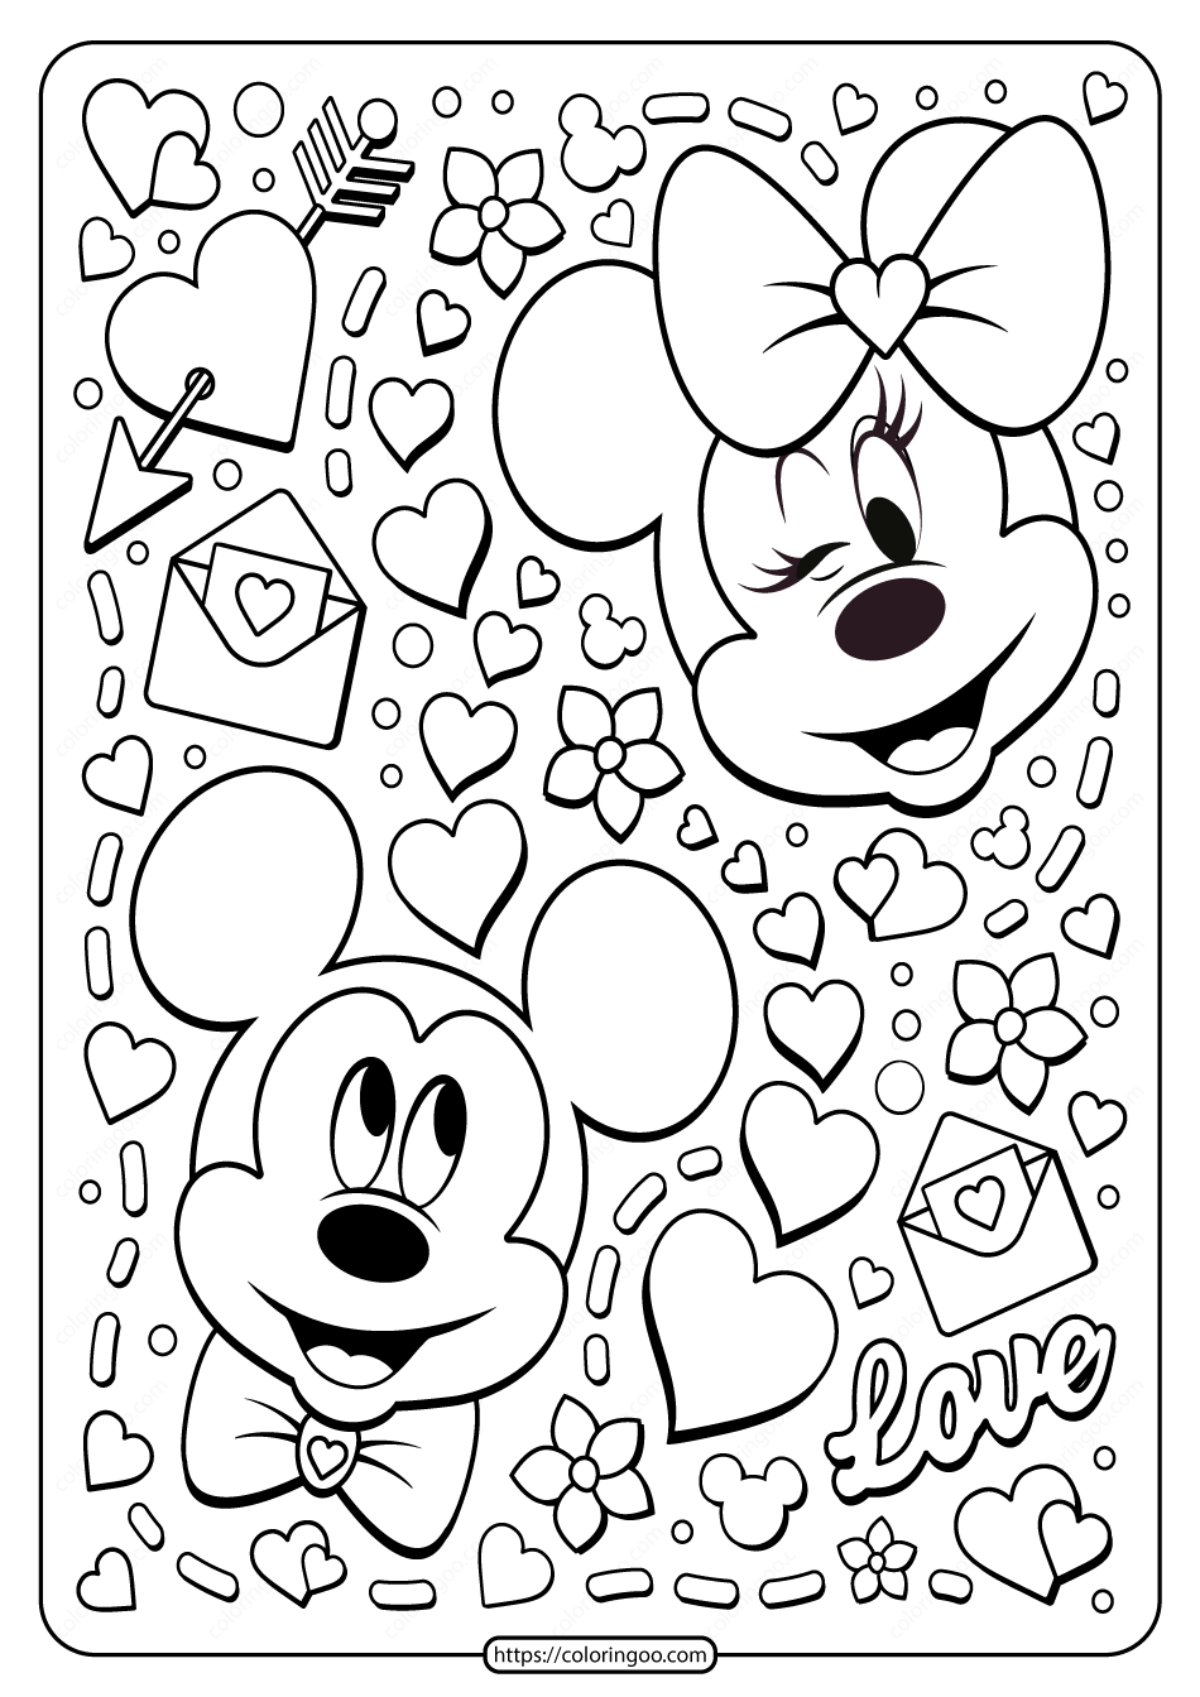 Mickey and Minnie Mouse Valentine Coloring Pages #1207 Mickey and ... | 1697x1200